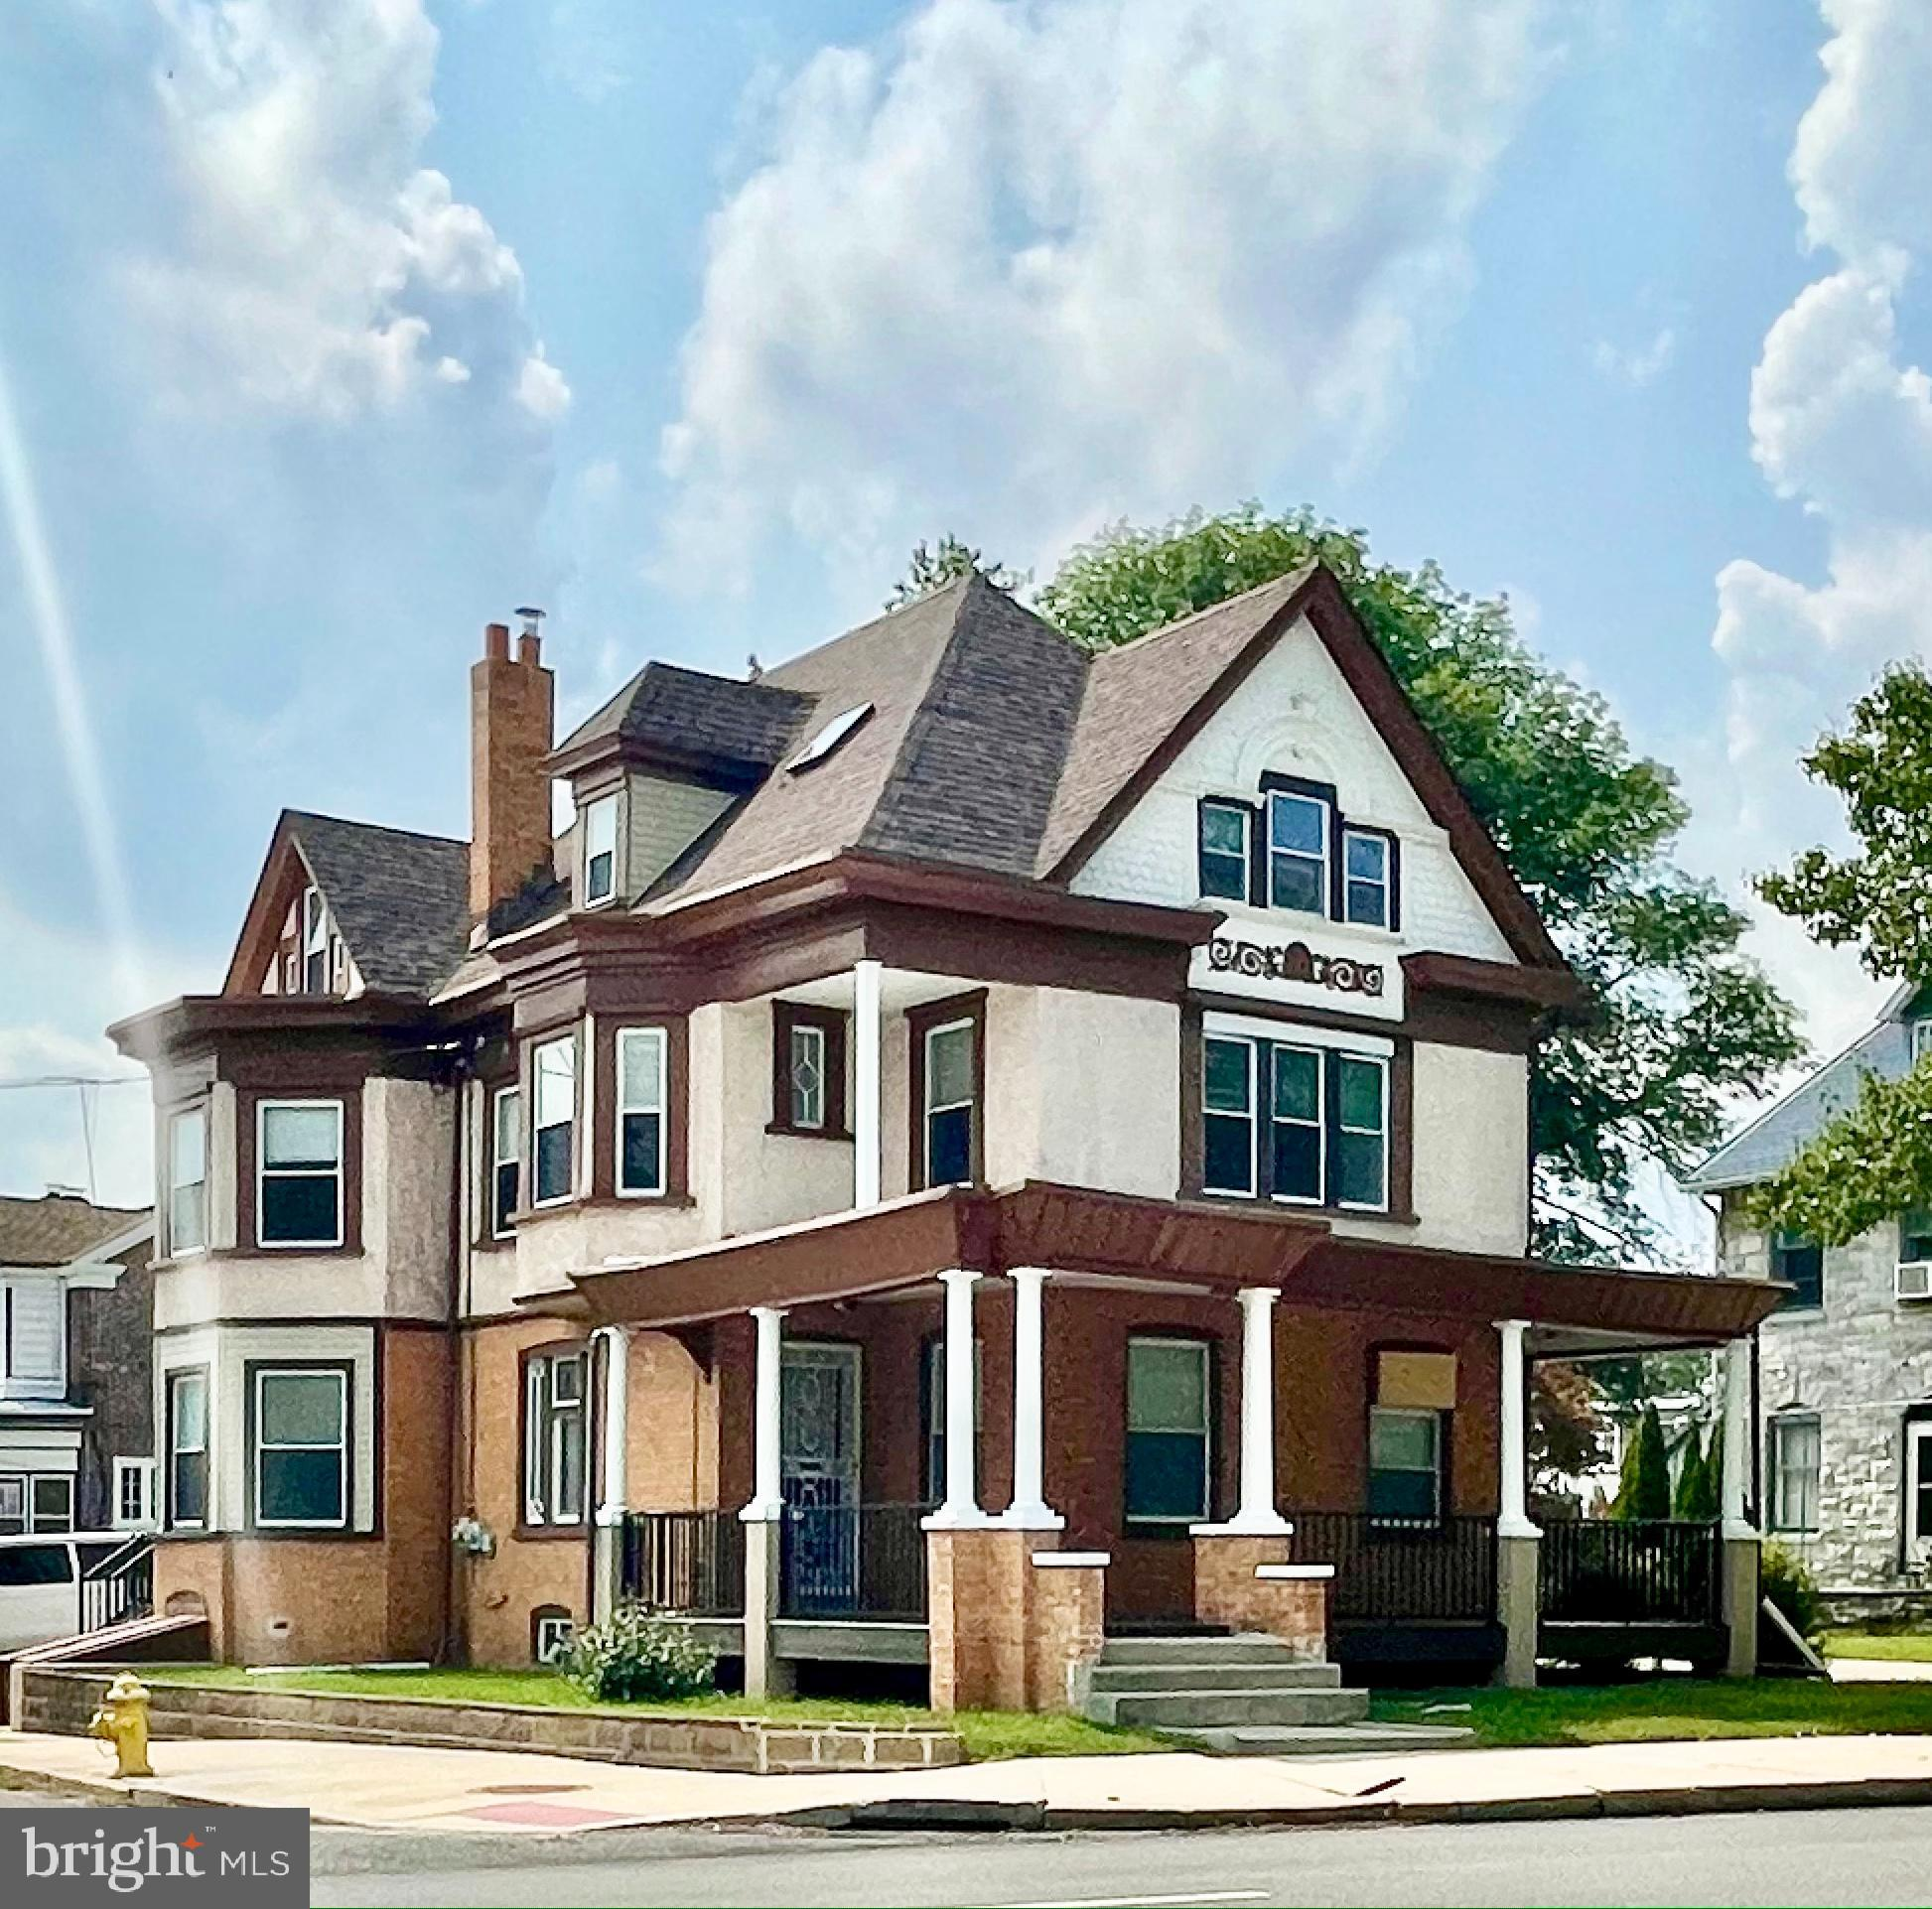 3212 SqFt House In Academy Hill